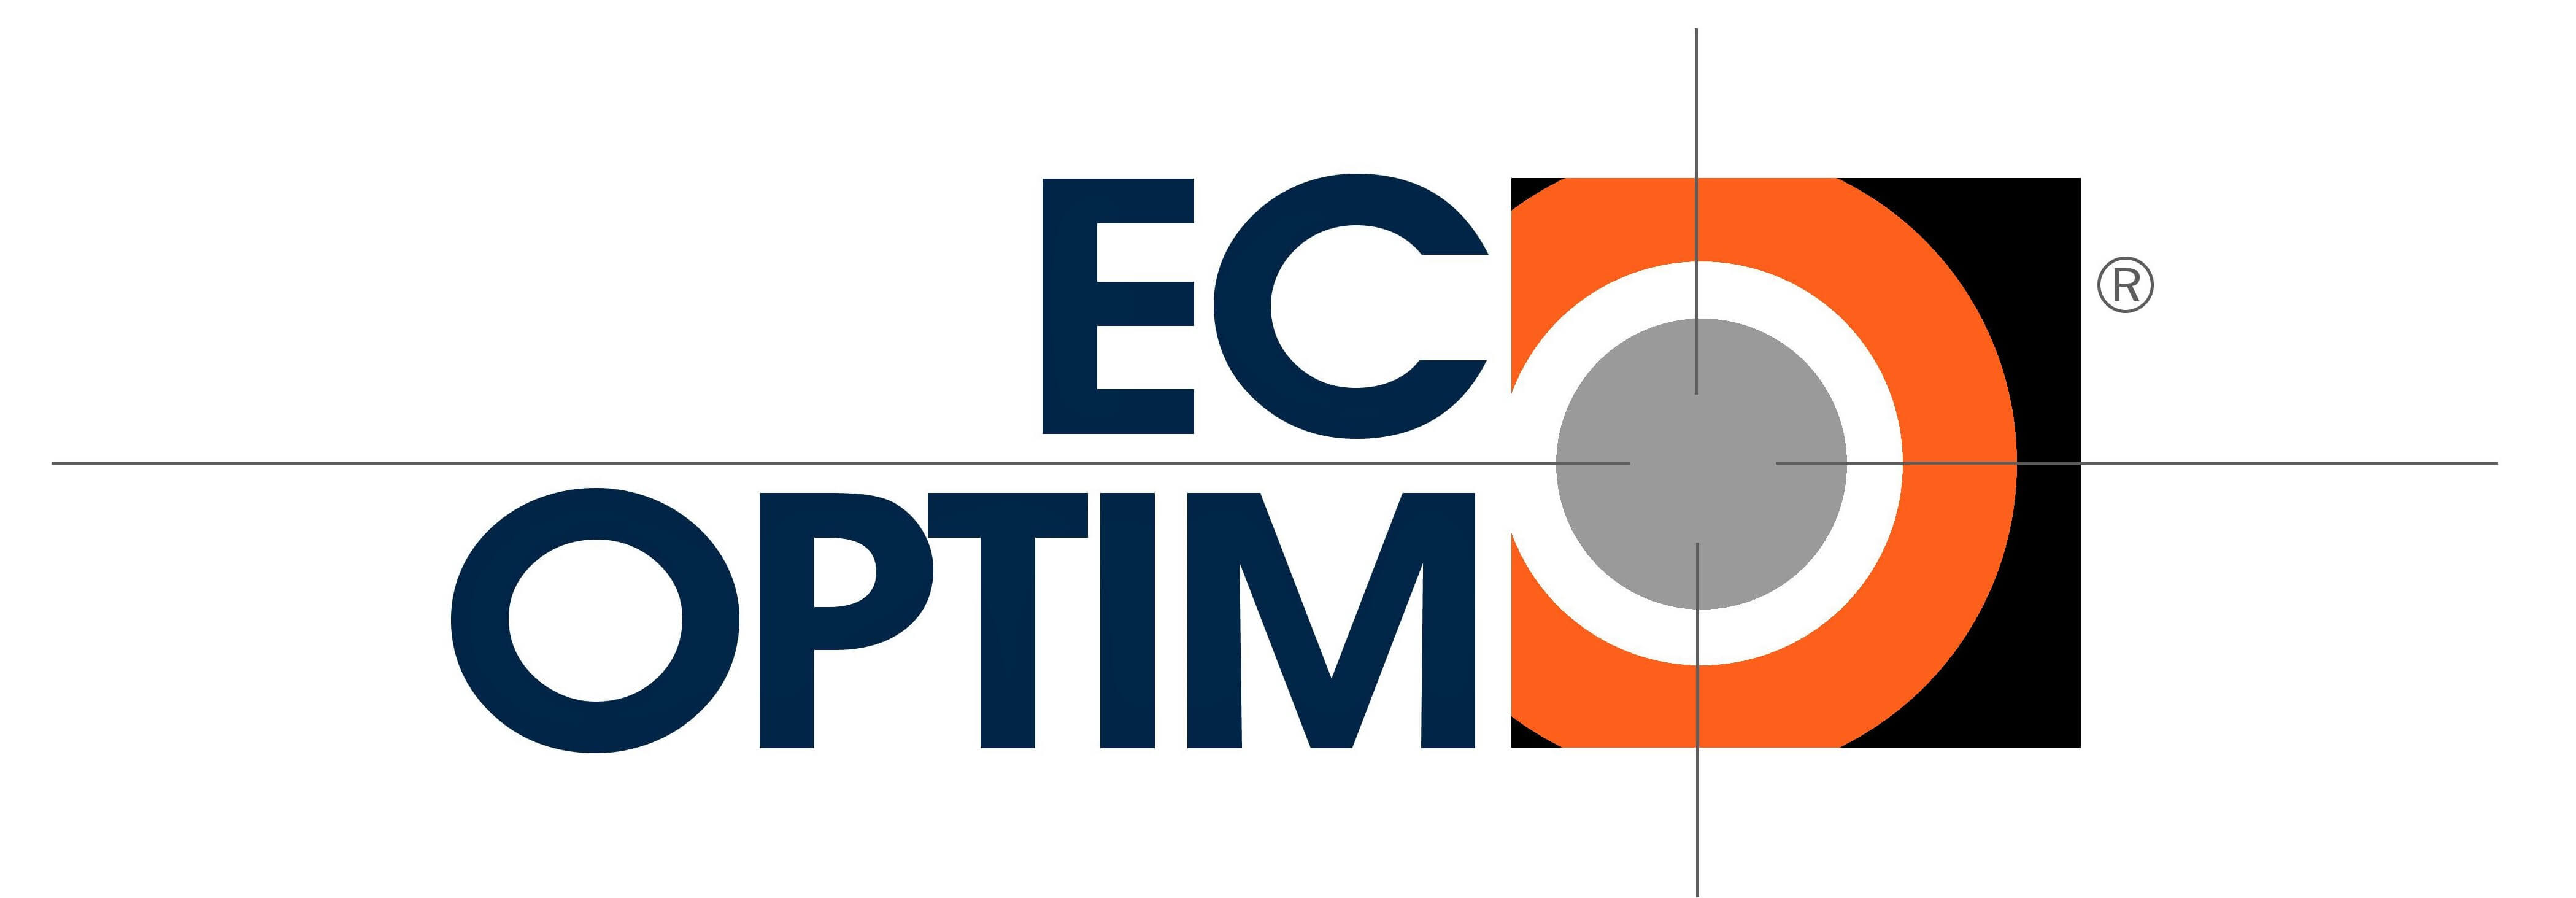 Eco optimo Arbos